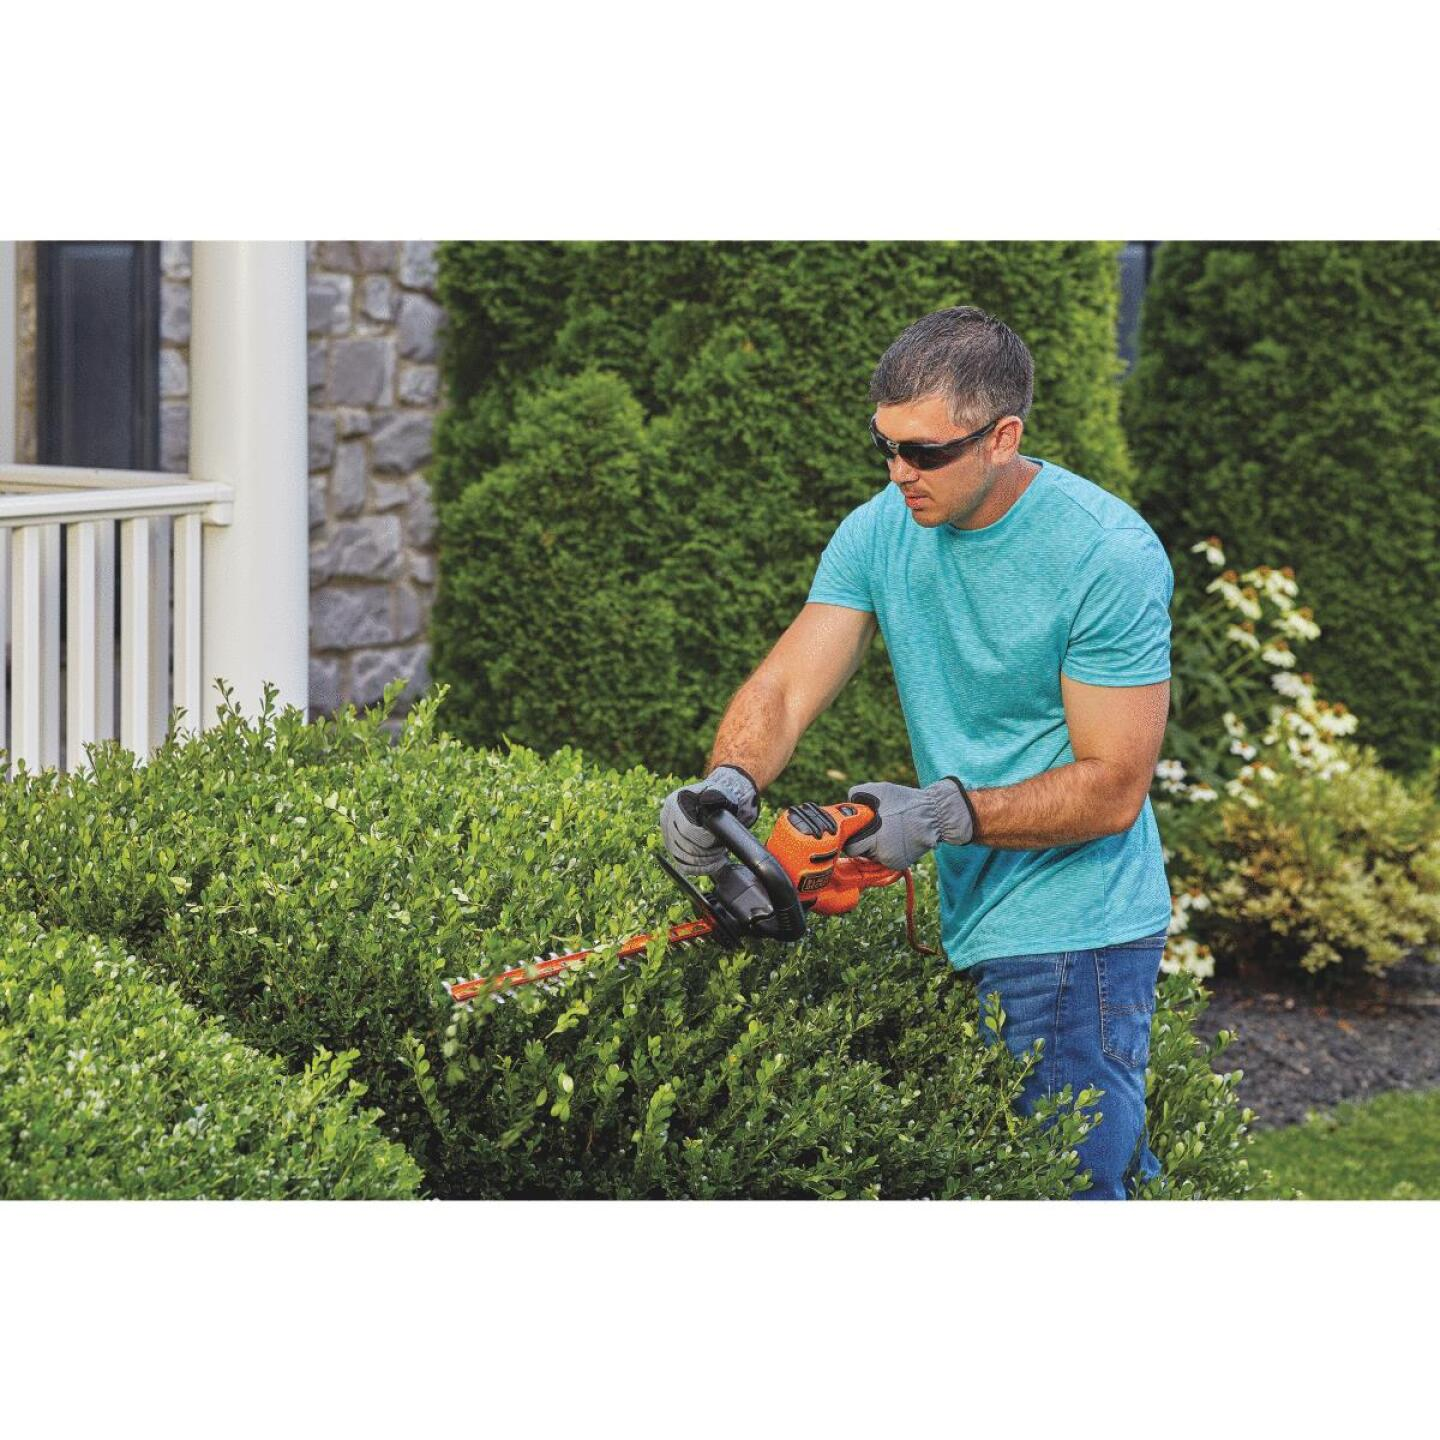 Black & Decker 16 In. 3-Amp Corded Electric Hedge Trimmer Image 4